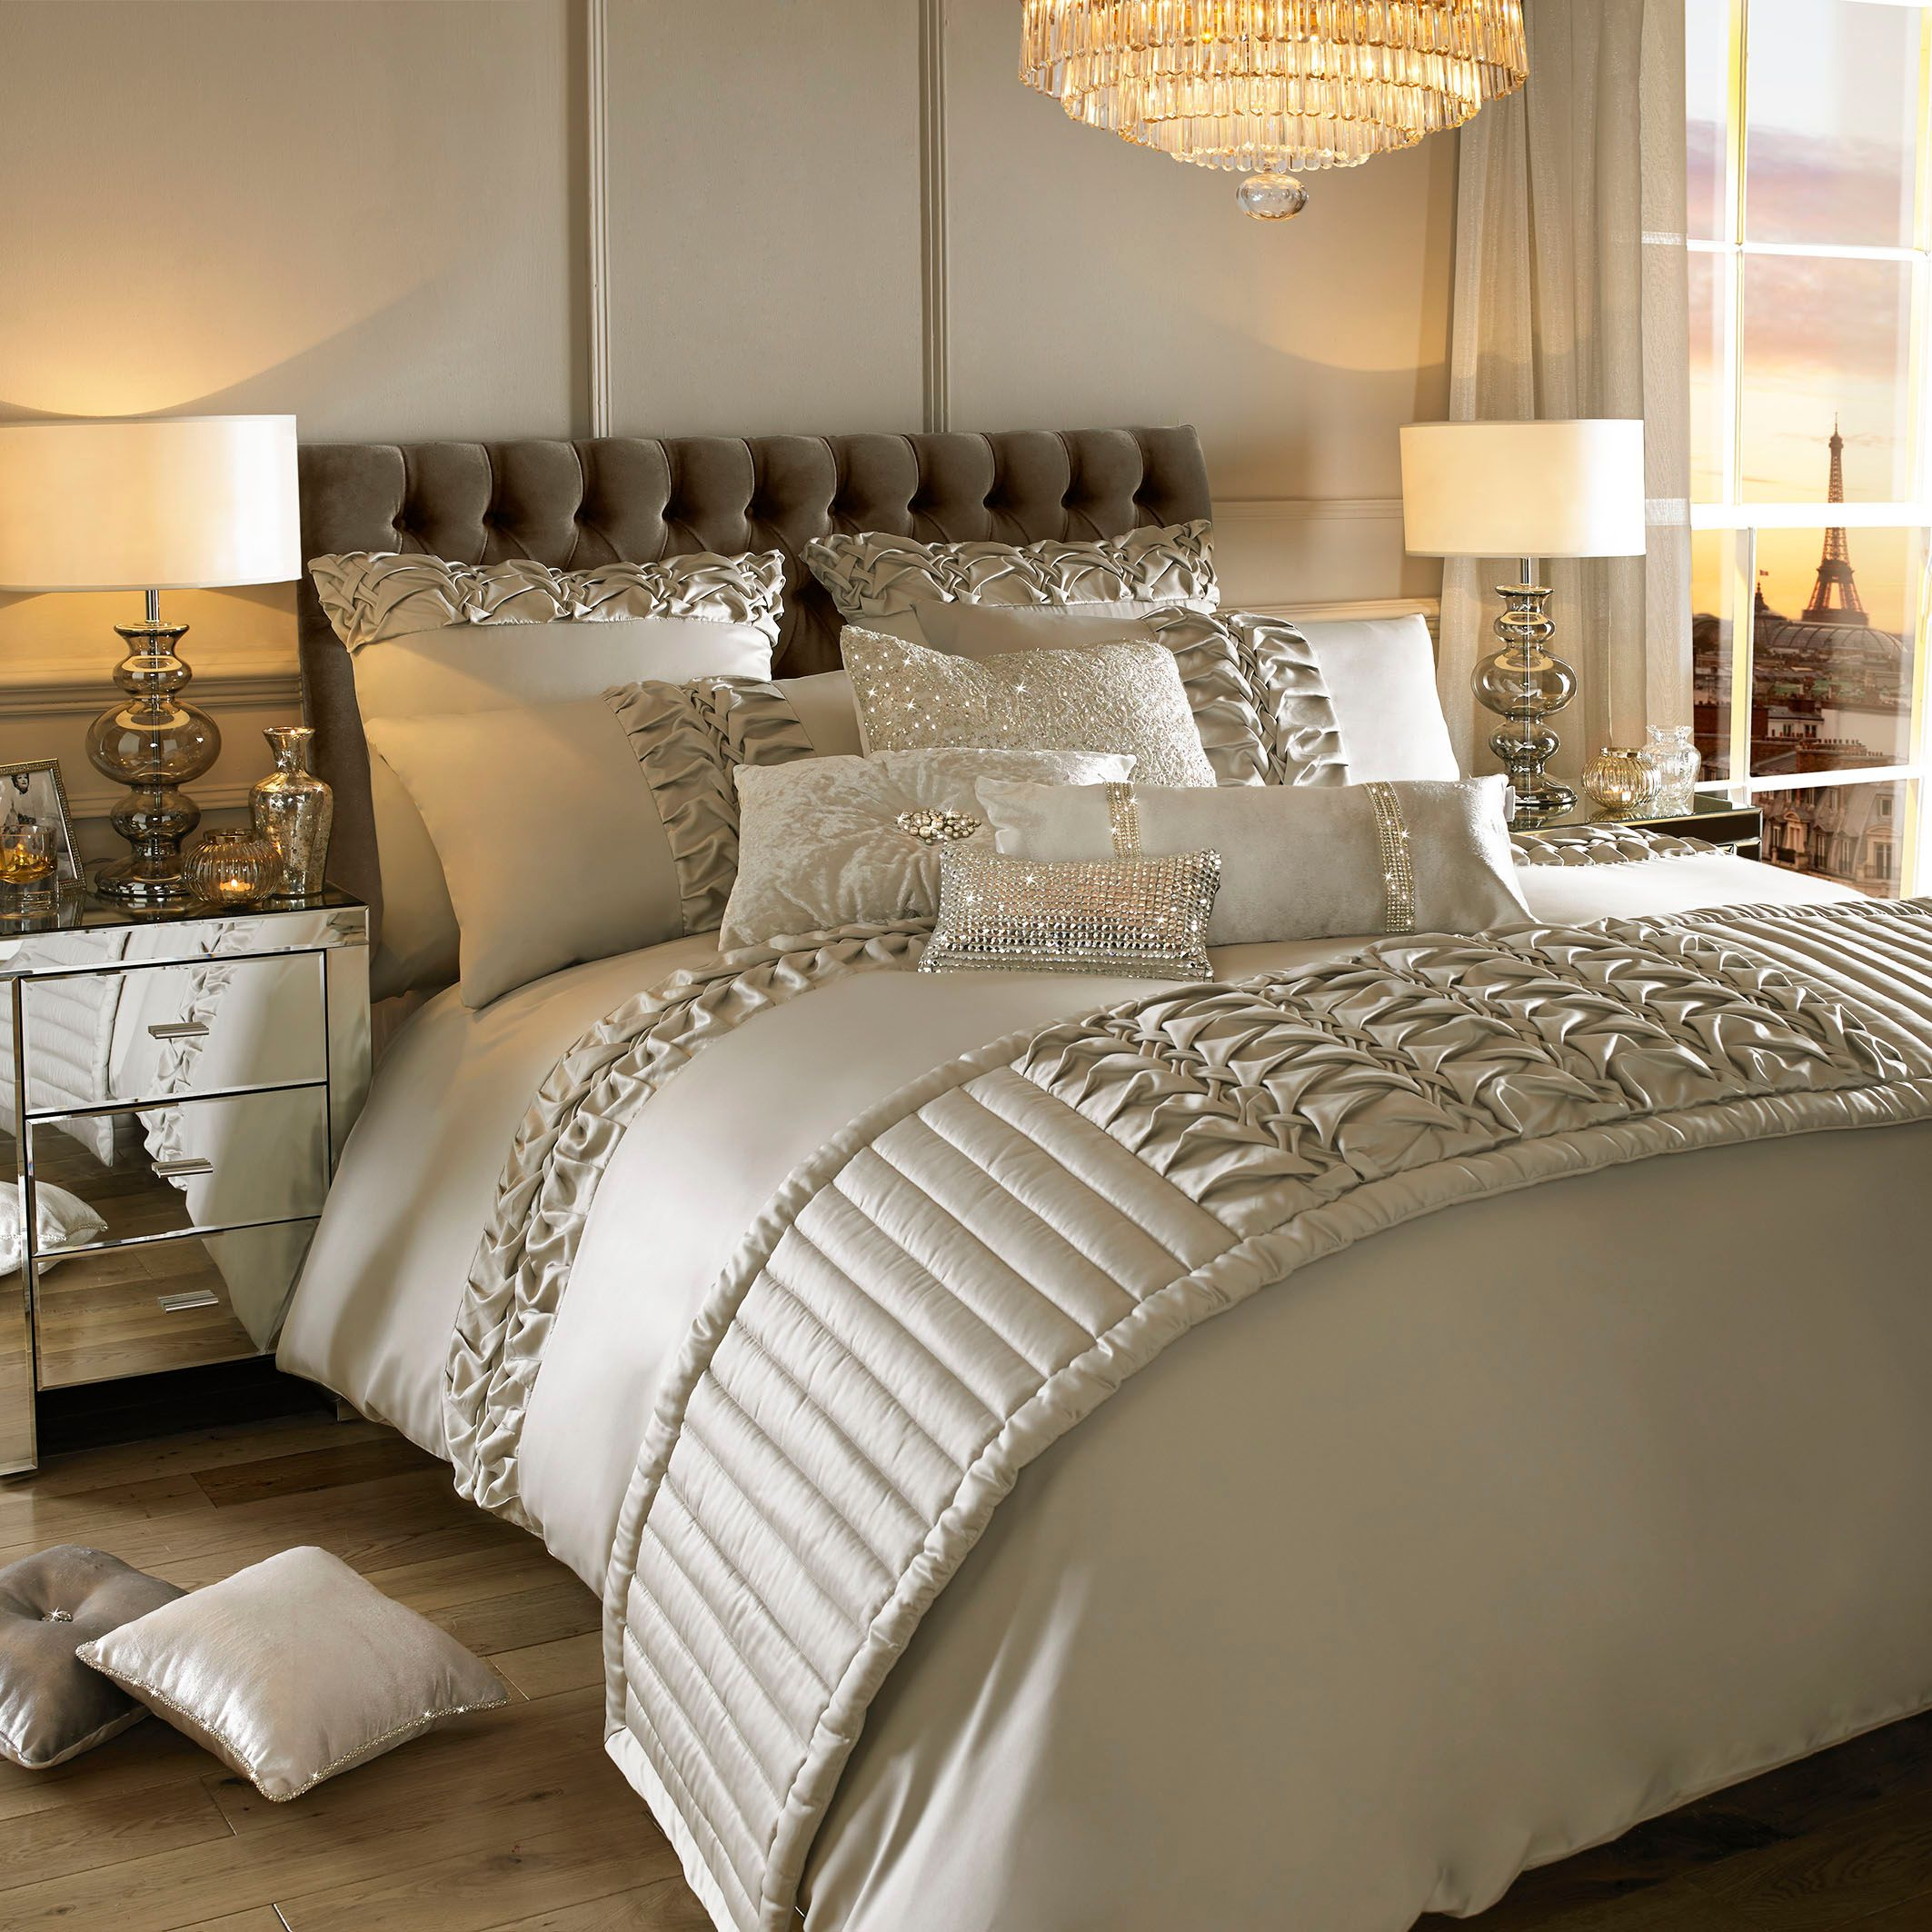 Shop by Specialty / Theme bedding is the easiest way to find the ideal bedding for your home! We have sorted the bedding collections that we offer into categories that will gather together the look that you are searching for. These categories have been chosen to help you quickly and easily find the perfect bedding .